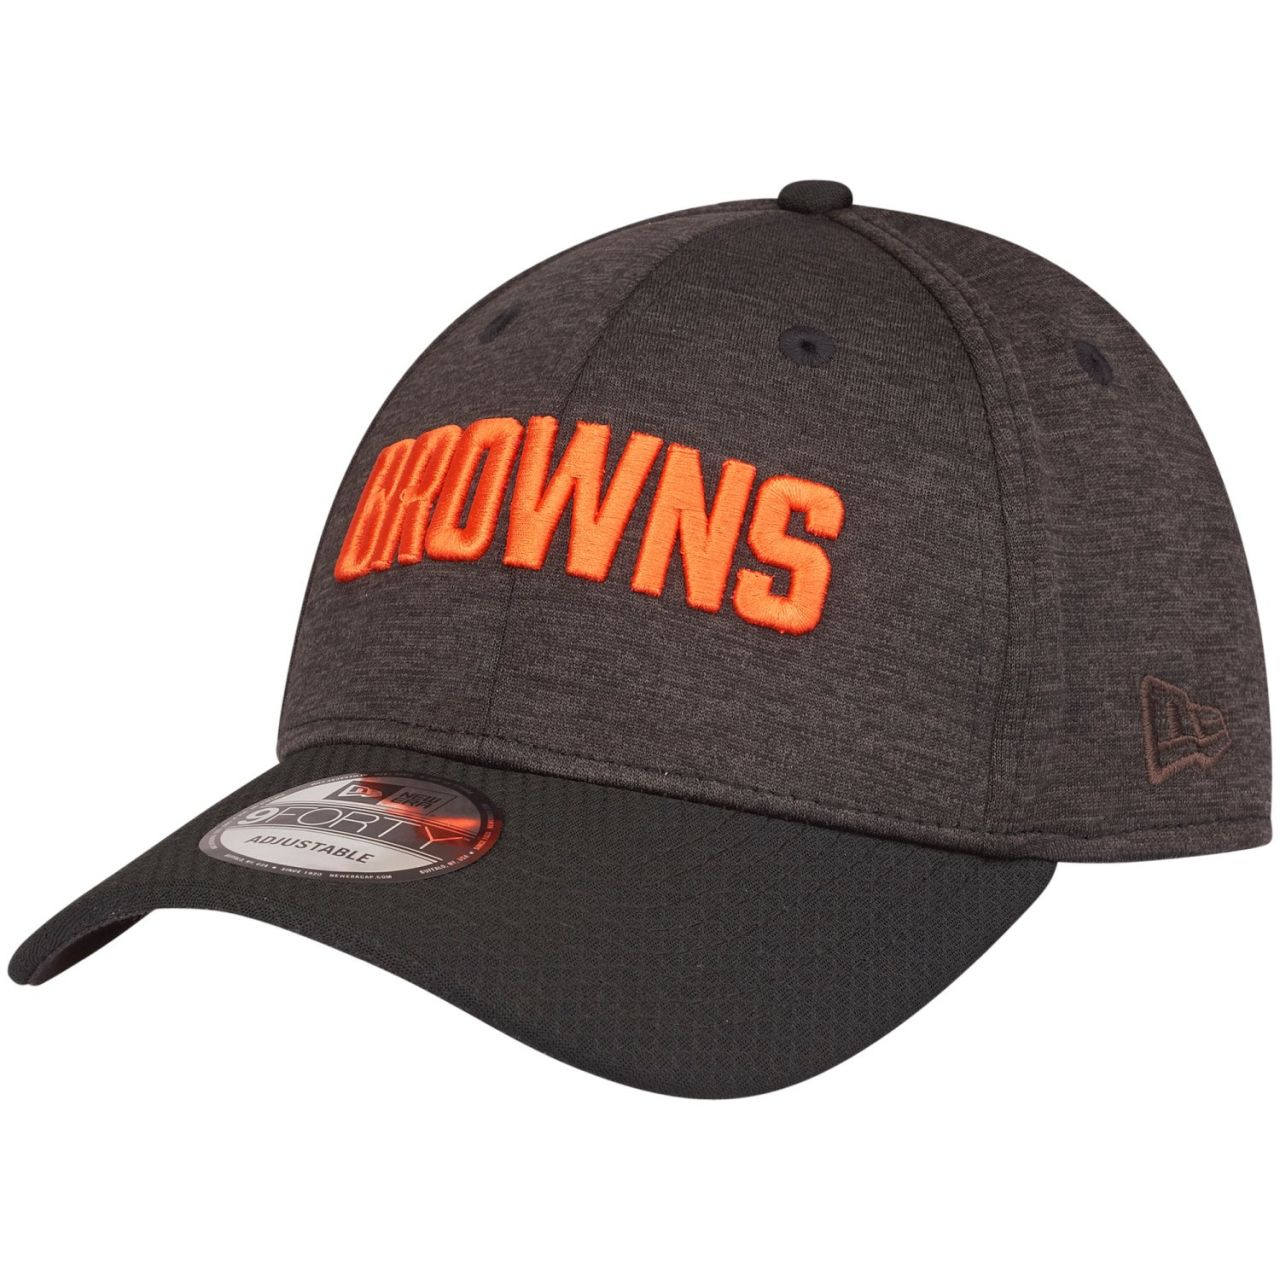 amfoo - New Era 9Forty NFL Cap - SHADOW HEX Cleveland Browns